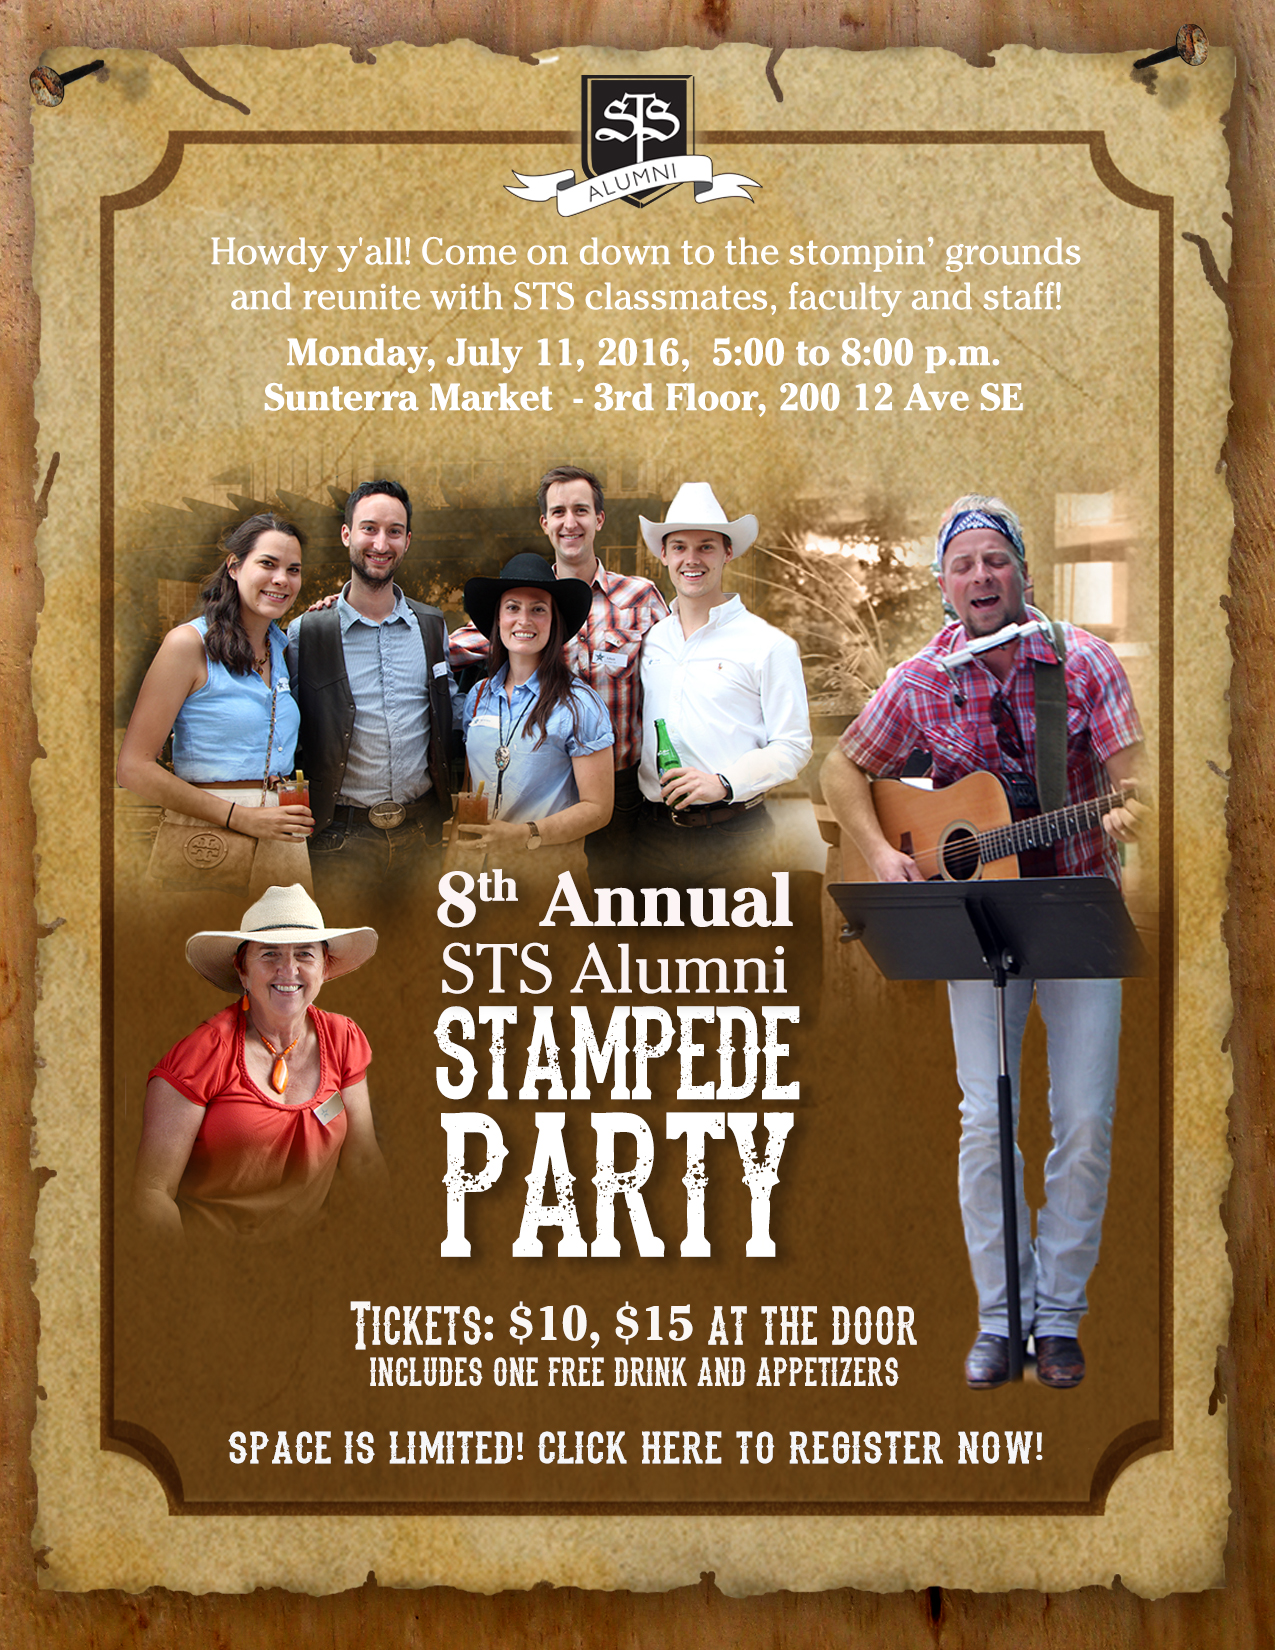 8th Annual STS Alumni Stampede Party Invitation